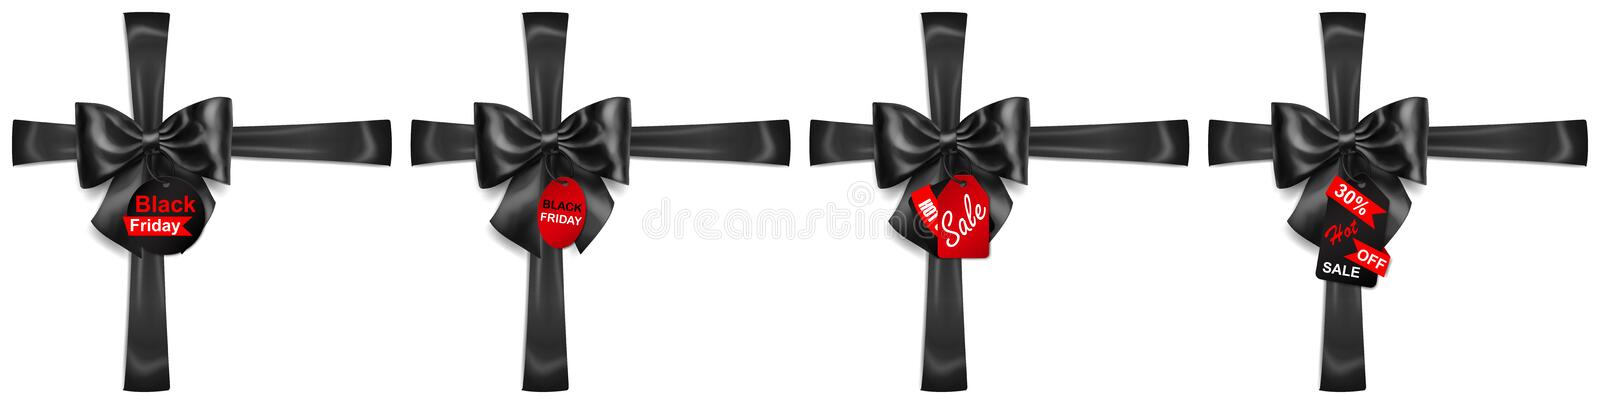 Set of black bows with crosswise ribbons and sale labels royalty free illustration